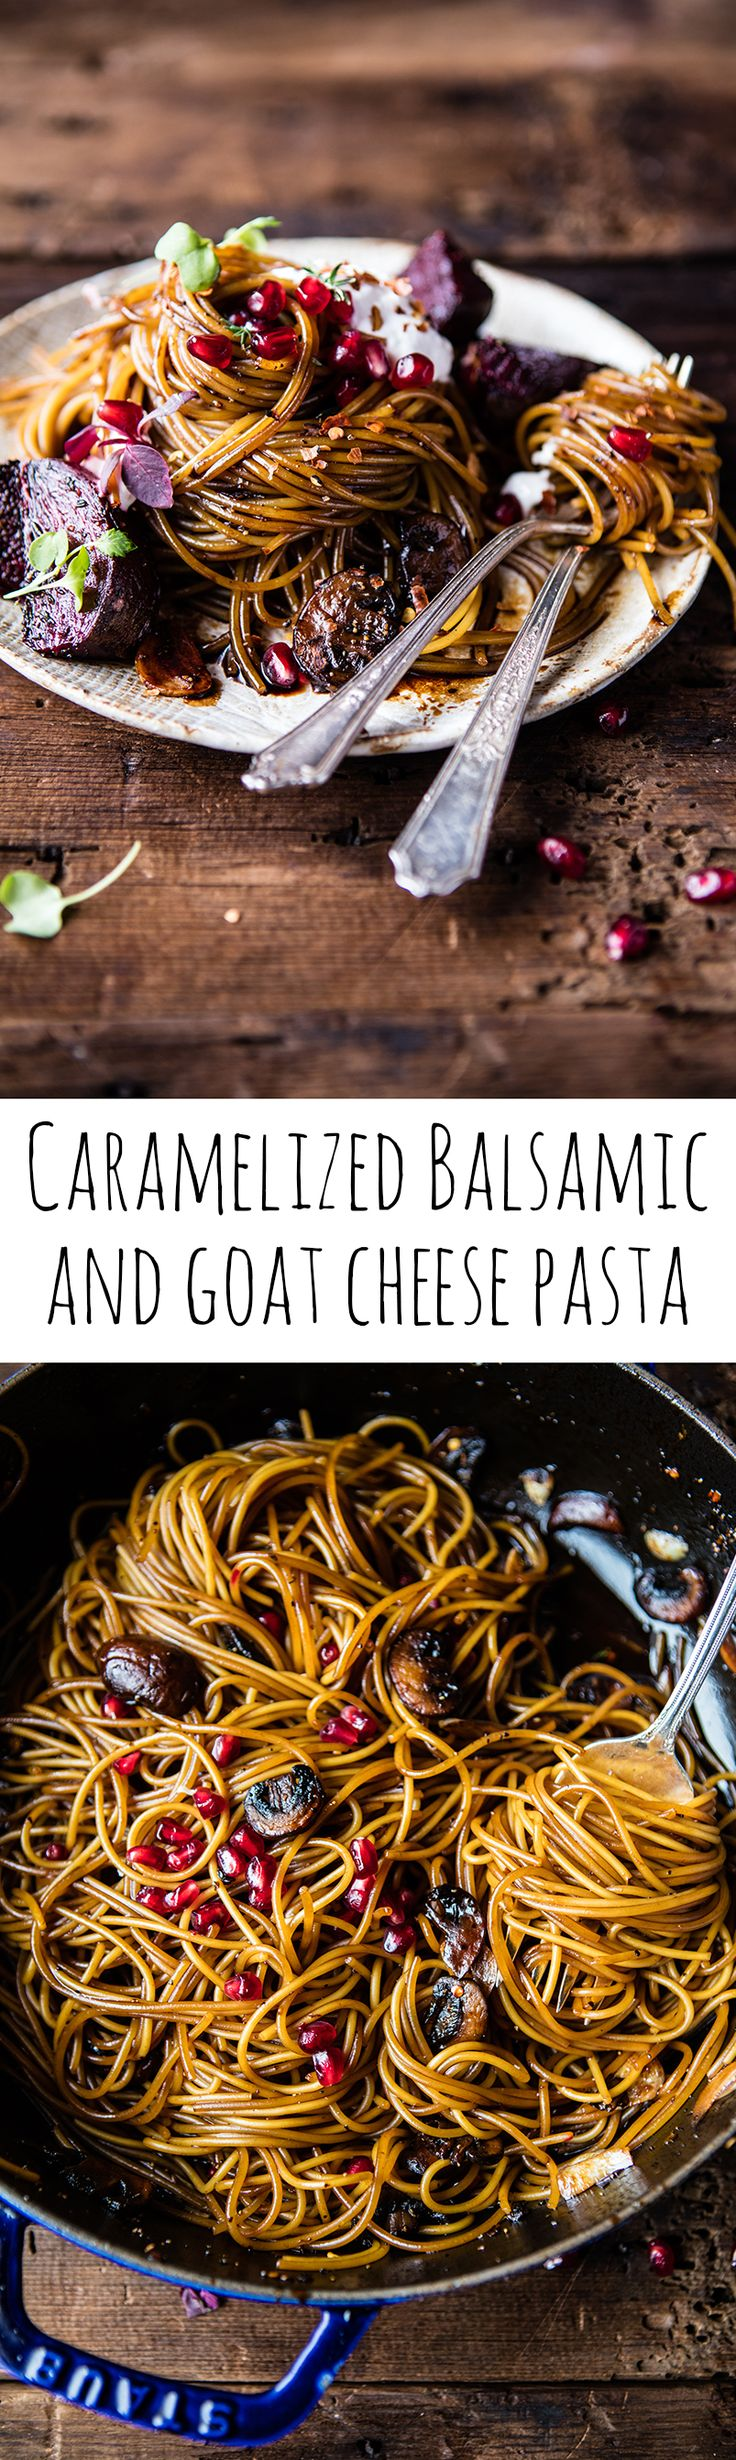 Caramelized Balsamic and Goat Cheese Pasta | halfbakedharvest.com @hbharvest